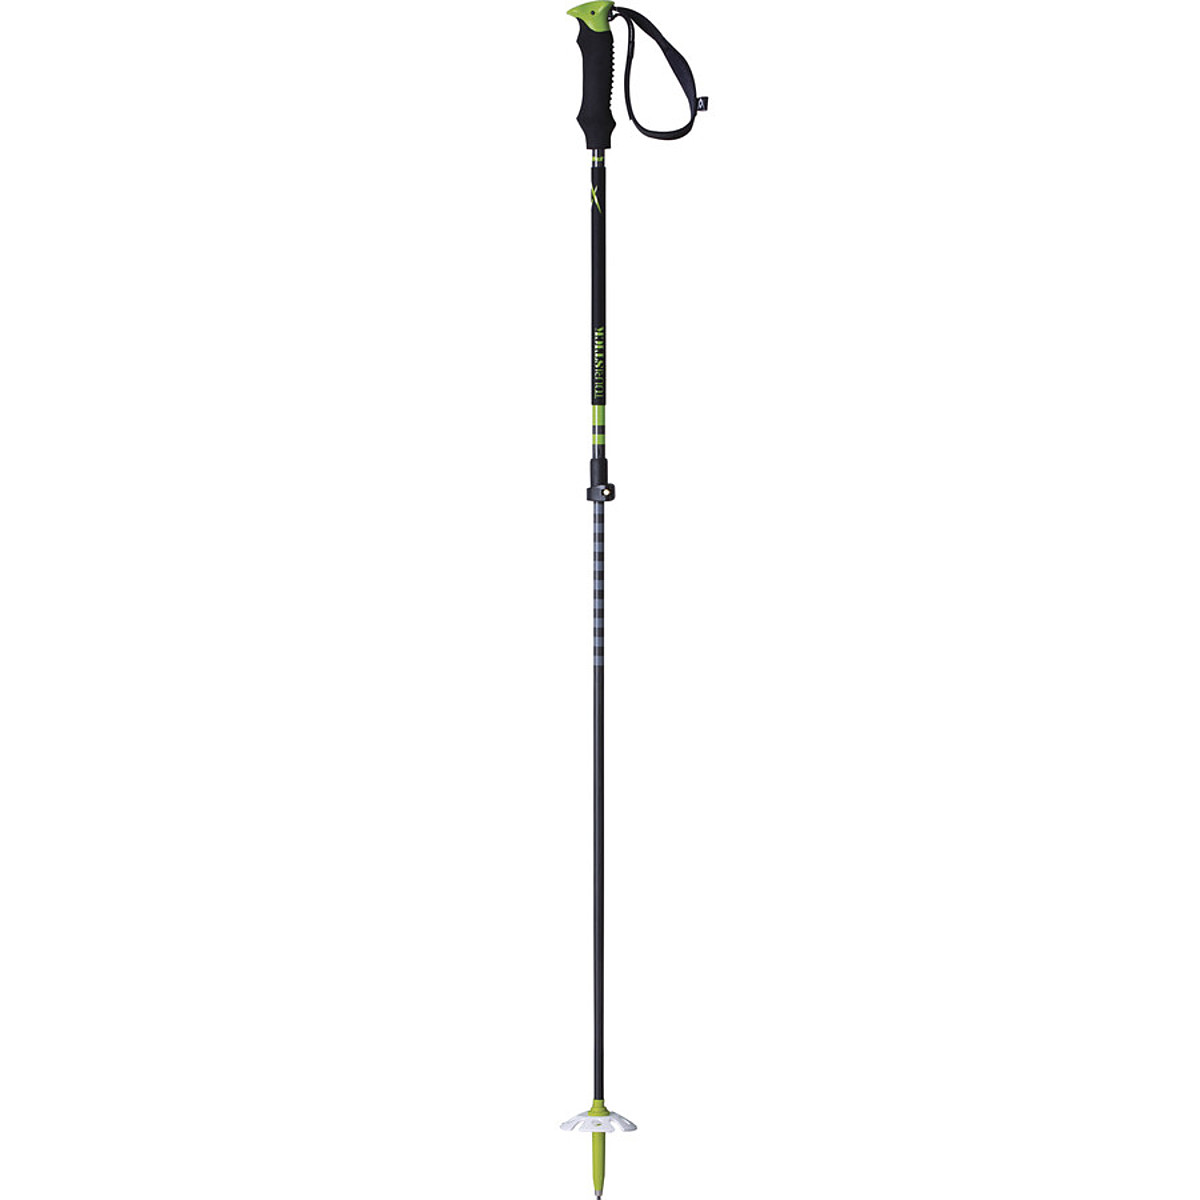 Volkl Touristick Vario CC Adjustable Ski Poles